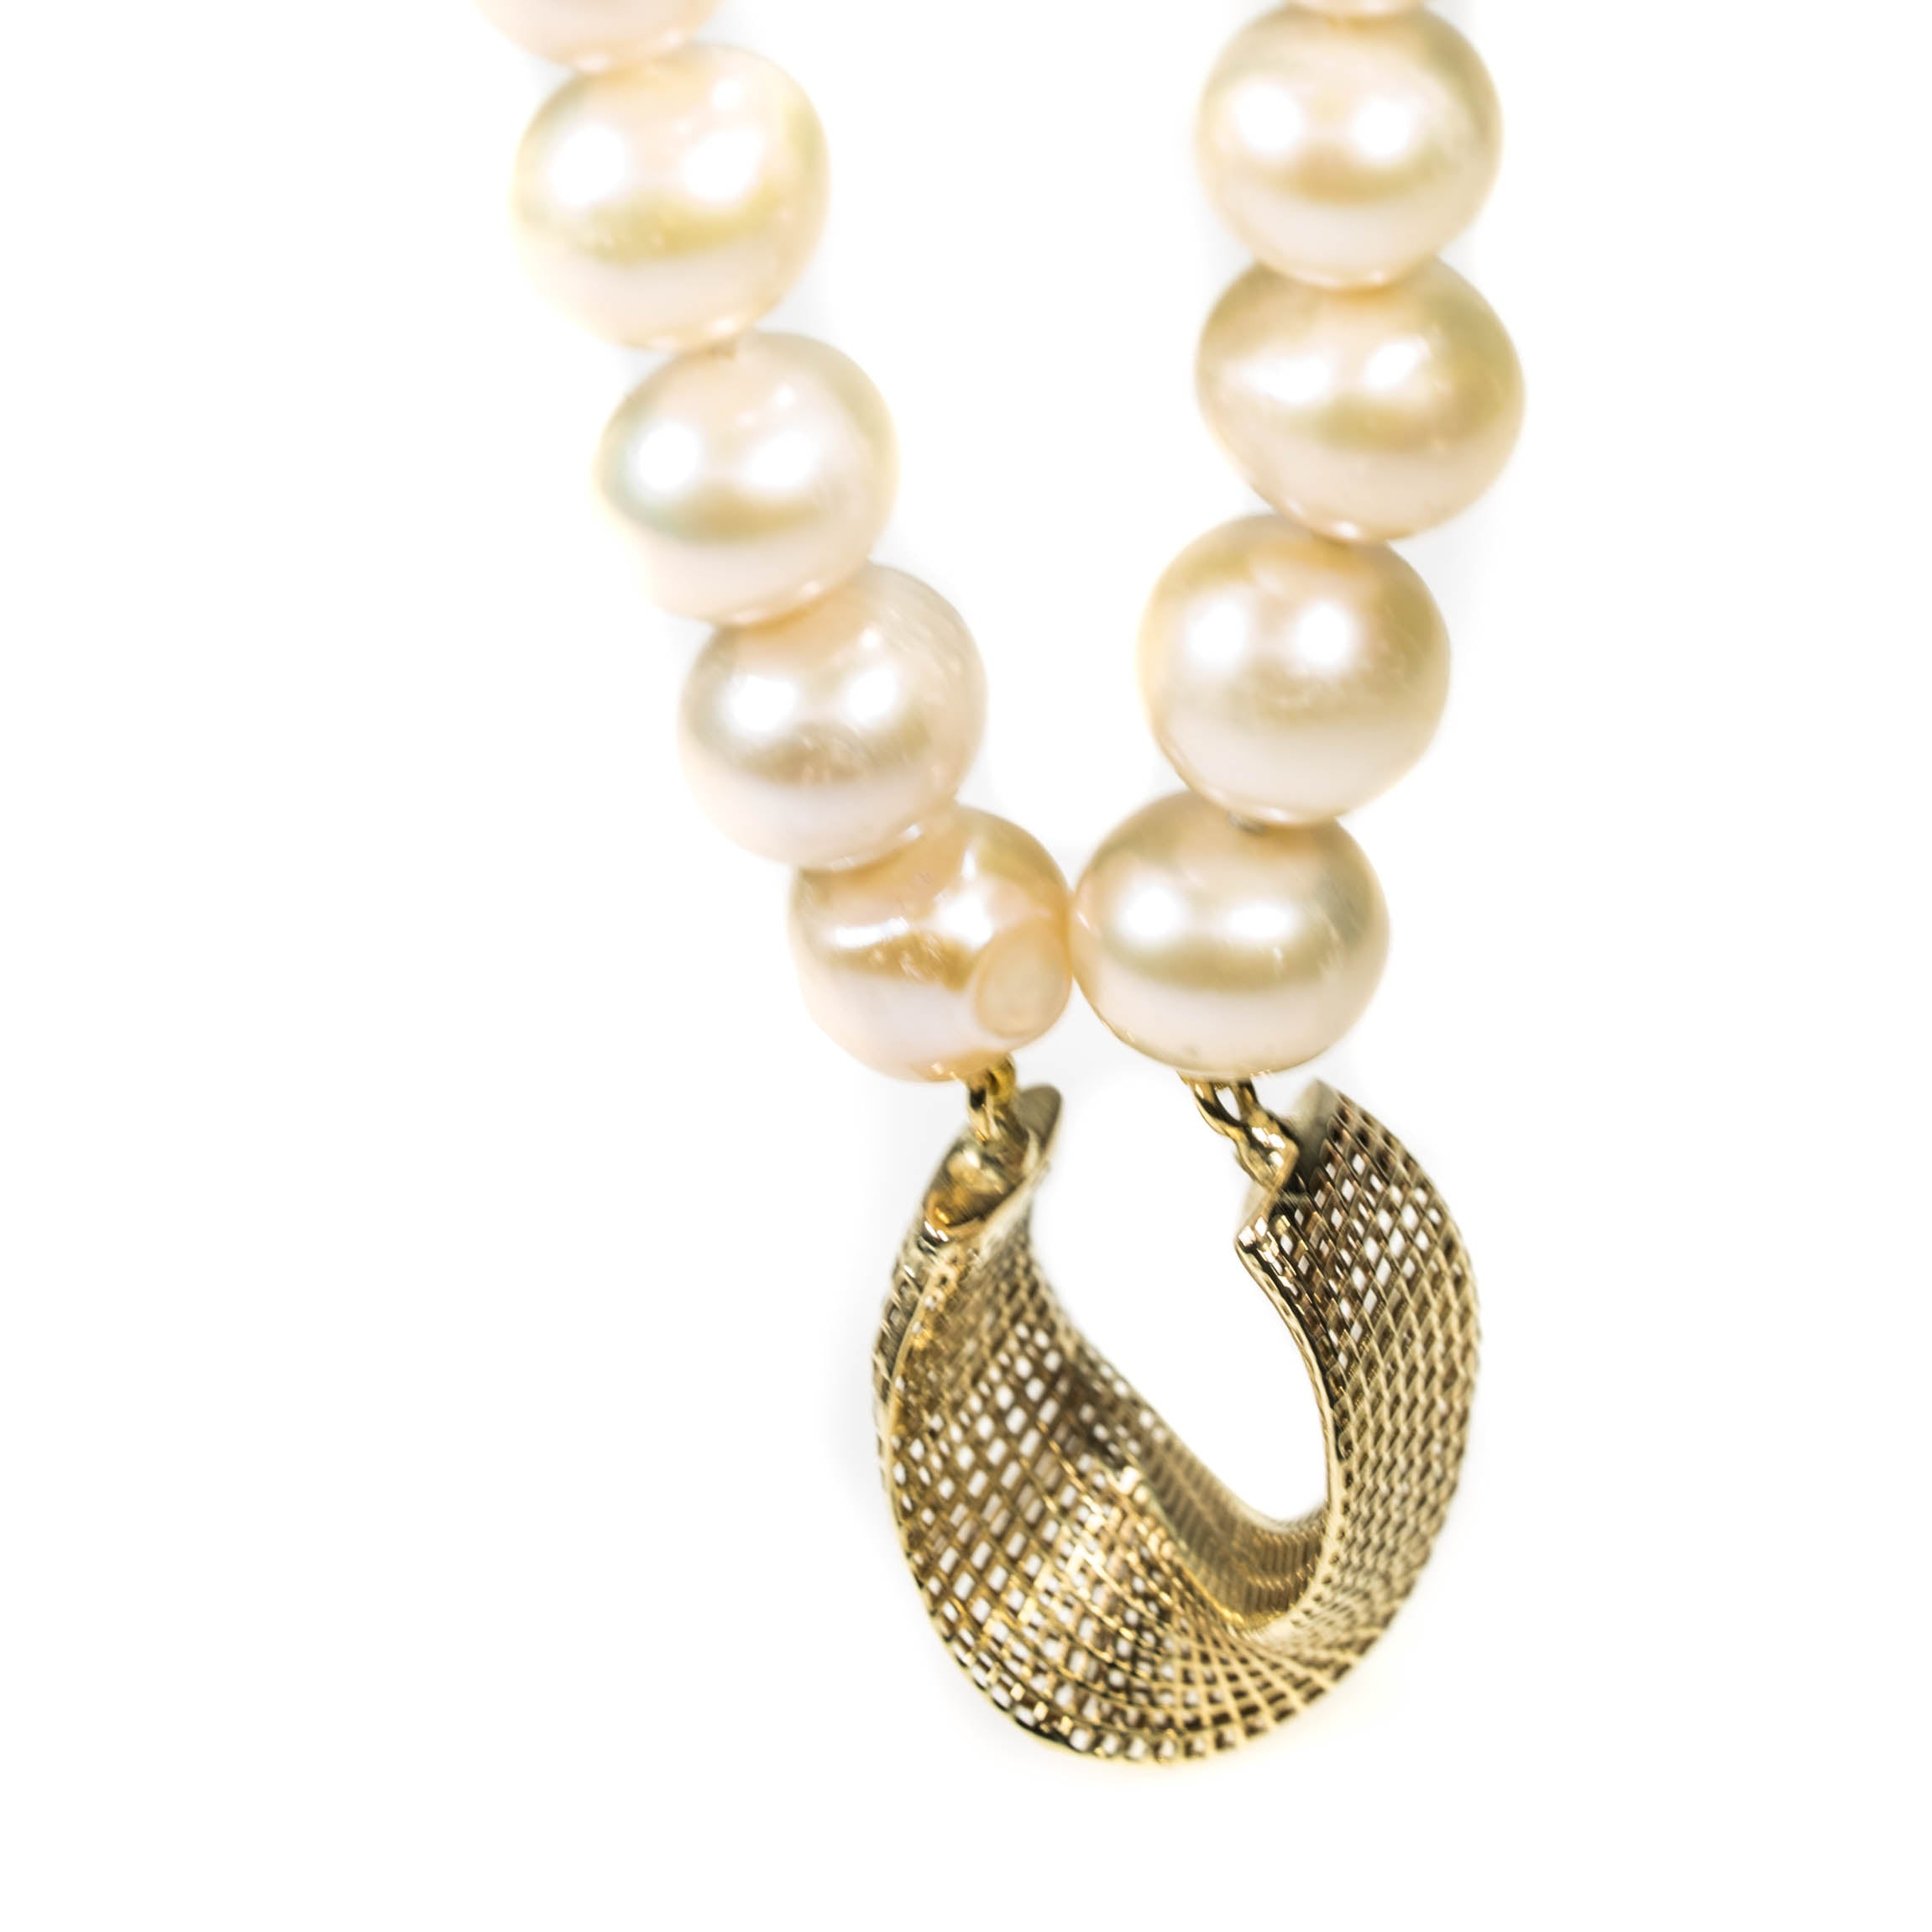 14K - Modern Freshwater Pearls Necklace - Net mobius center piece